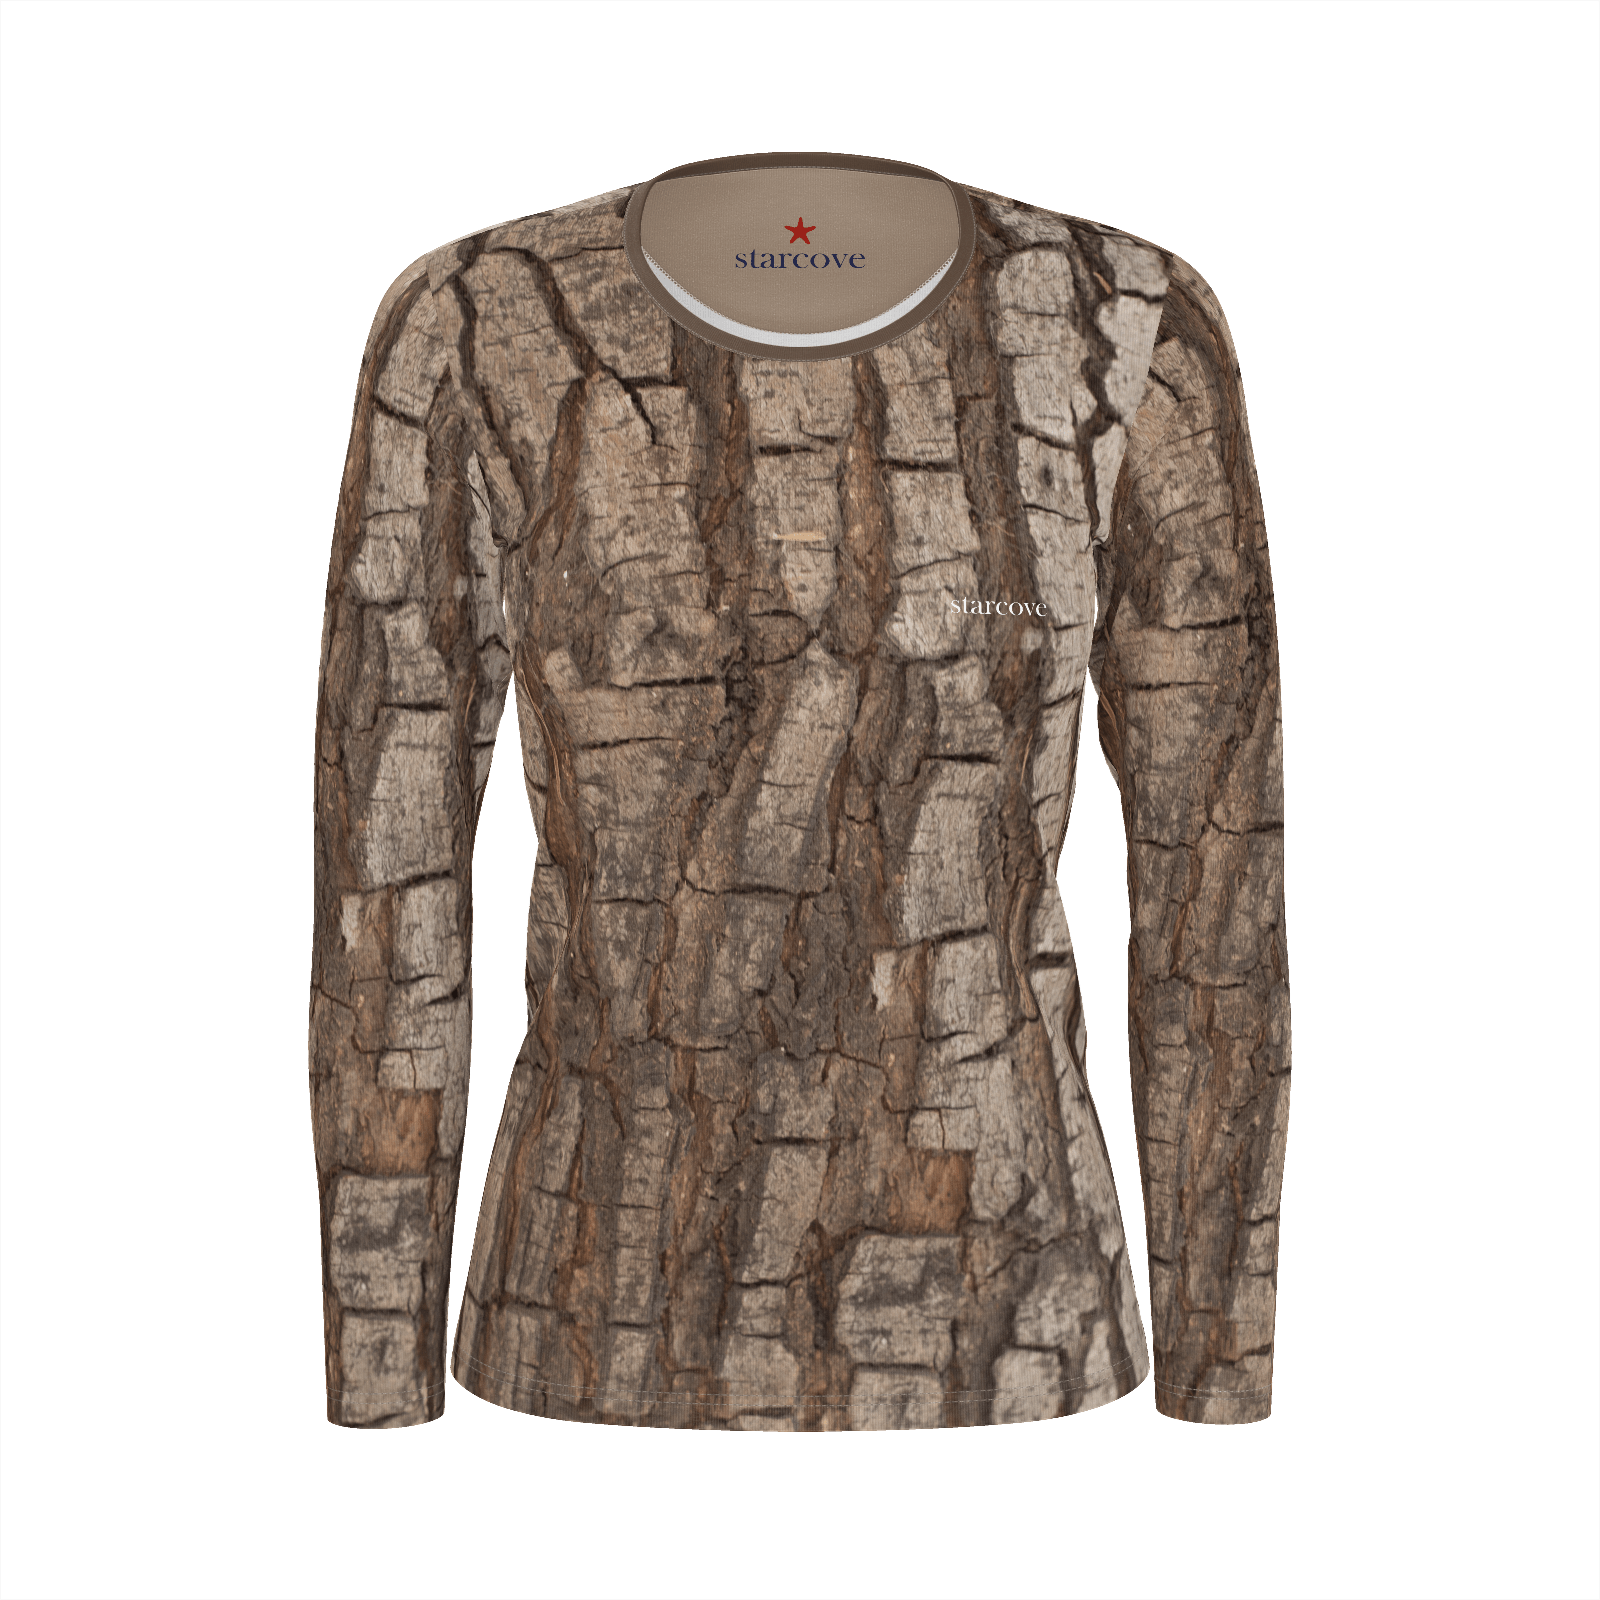 Tree Bark Print Women Shirt, Nature Hunting Wood Camo Camouflage, Forest Costumes Cosplay, Women's Long Sleeve Top Eco Friendly Clothes - Starcove Design